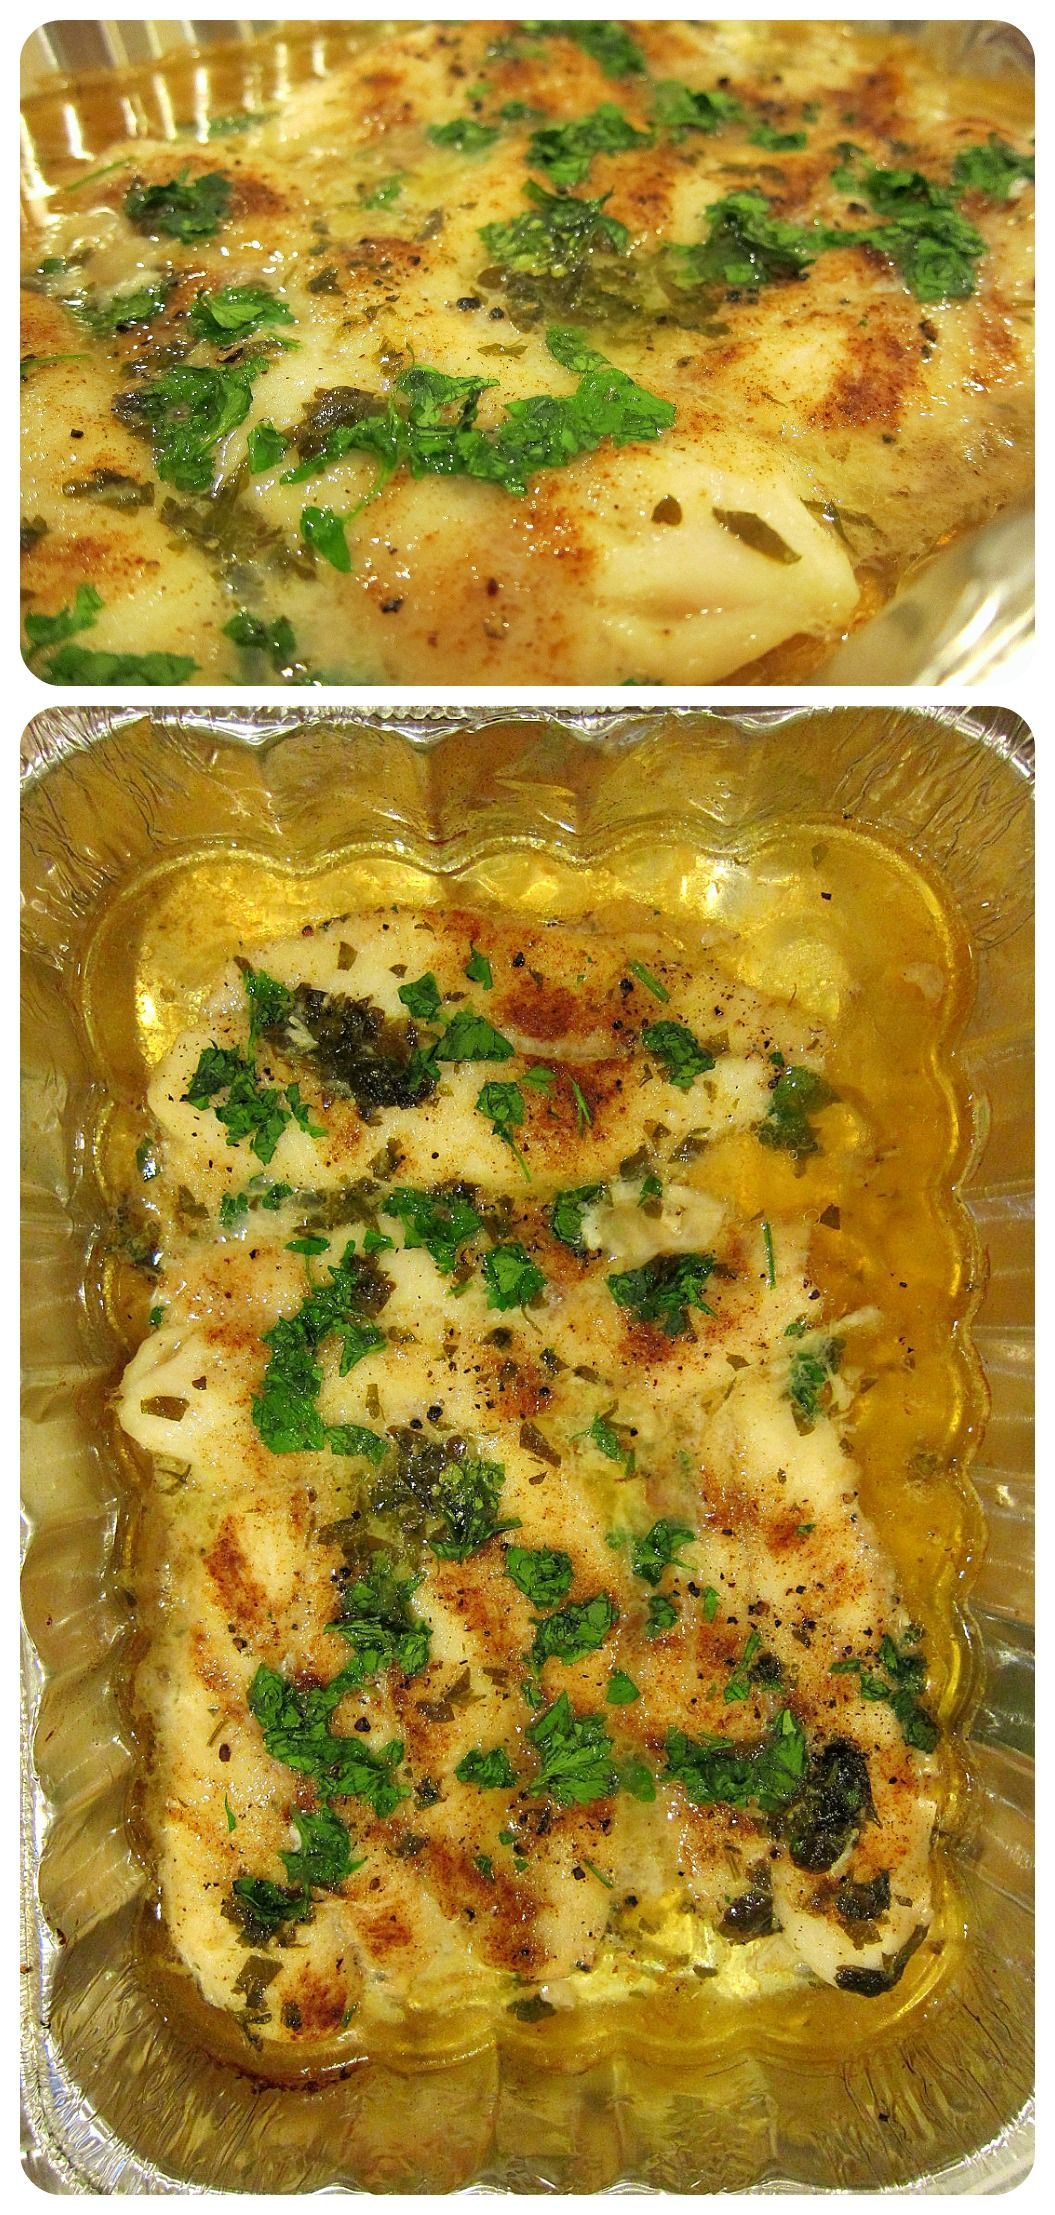 Fillets baked in a White Wine Lemon Garlic Sauce - Super easy and delicious!! ~~Melissa